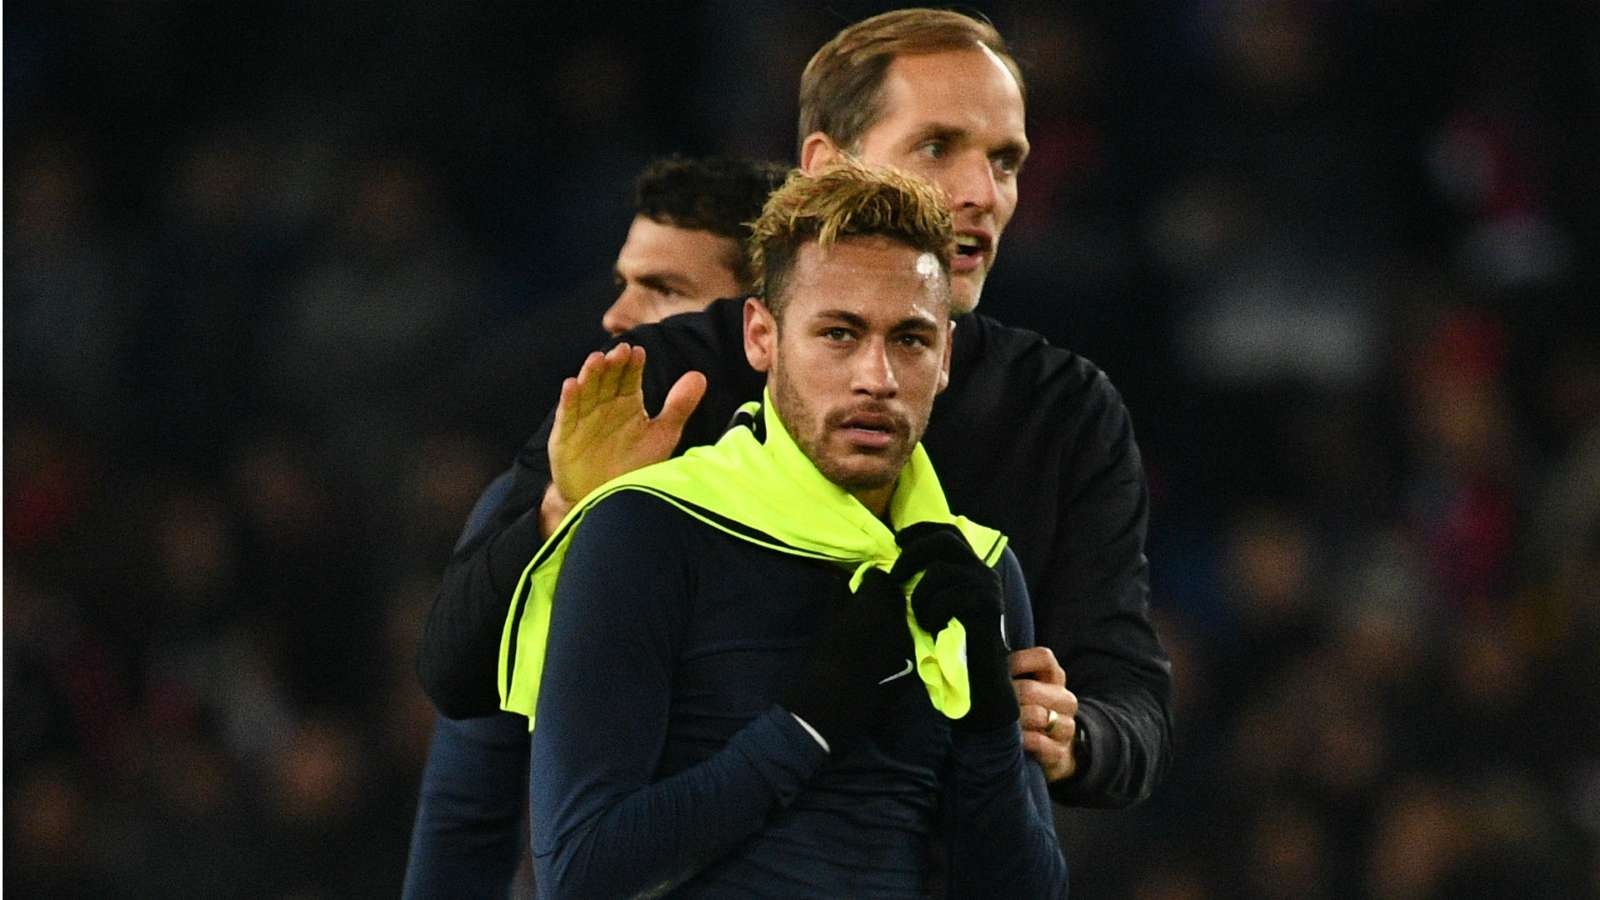 Tuchel shocks Neymar with an unexpected decision against Real Madrid